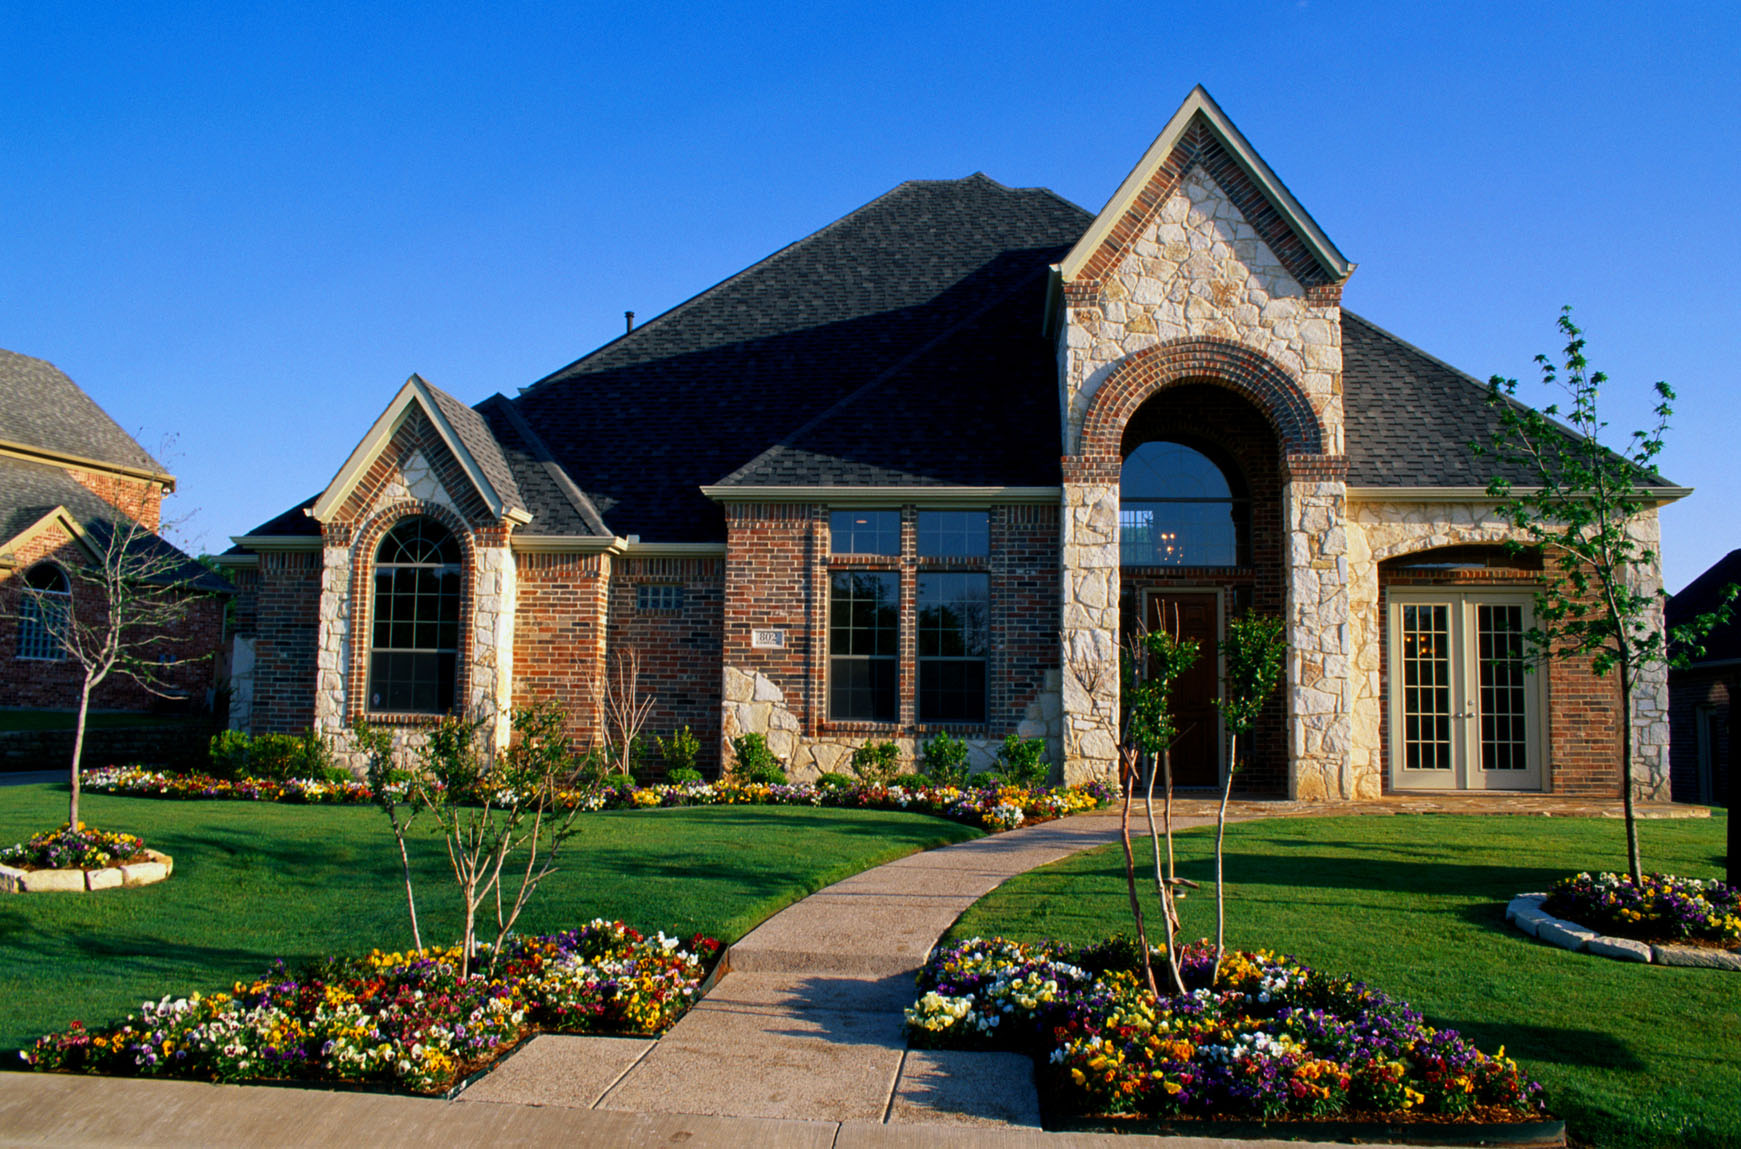 How to Prepare Your Home for the Market